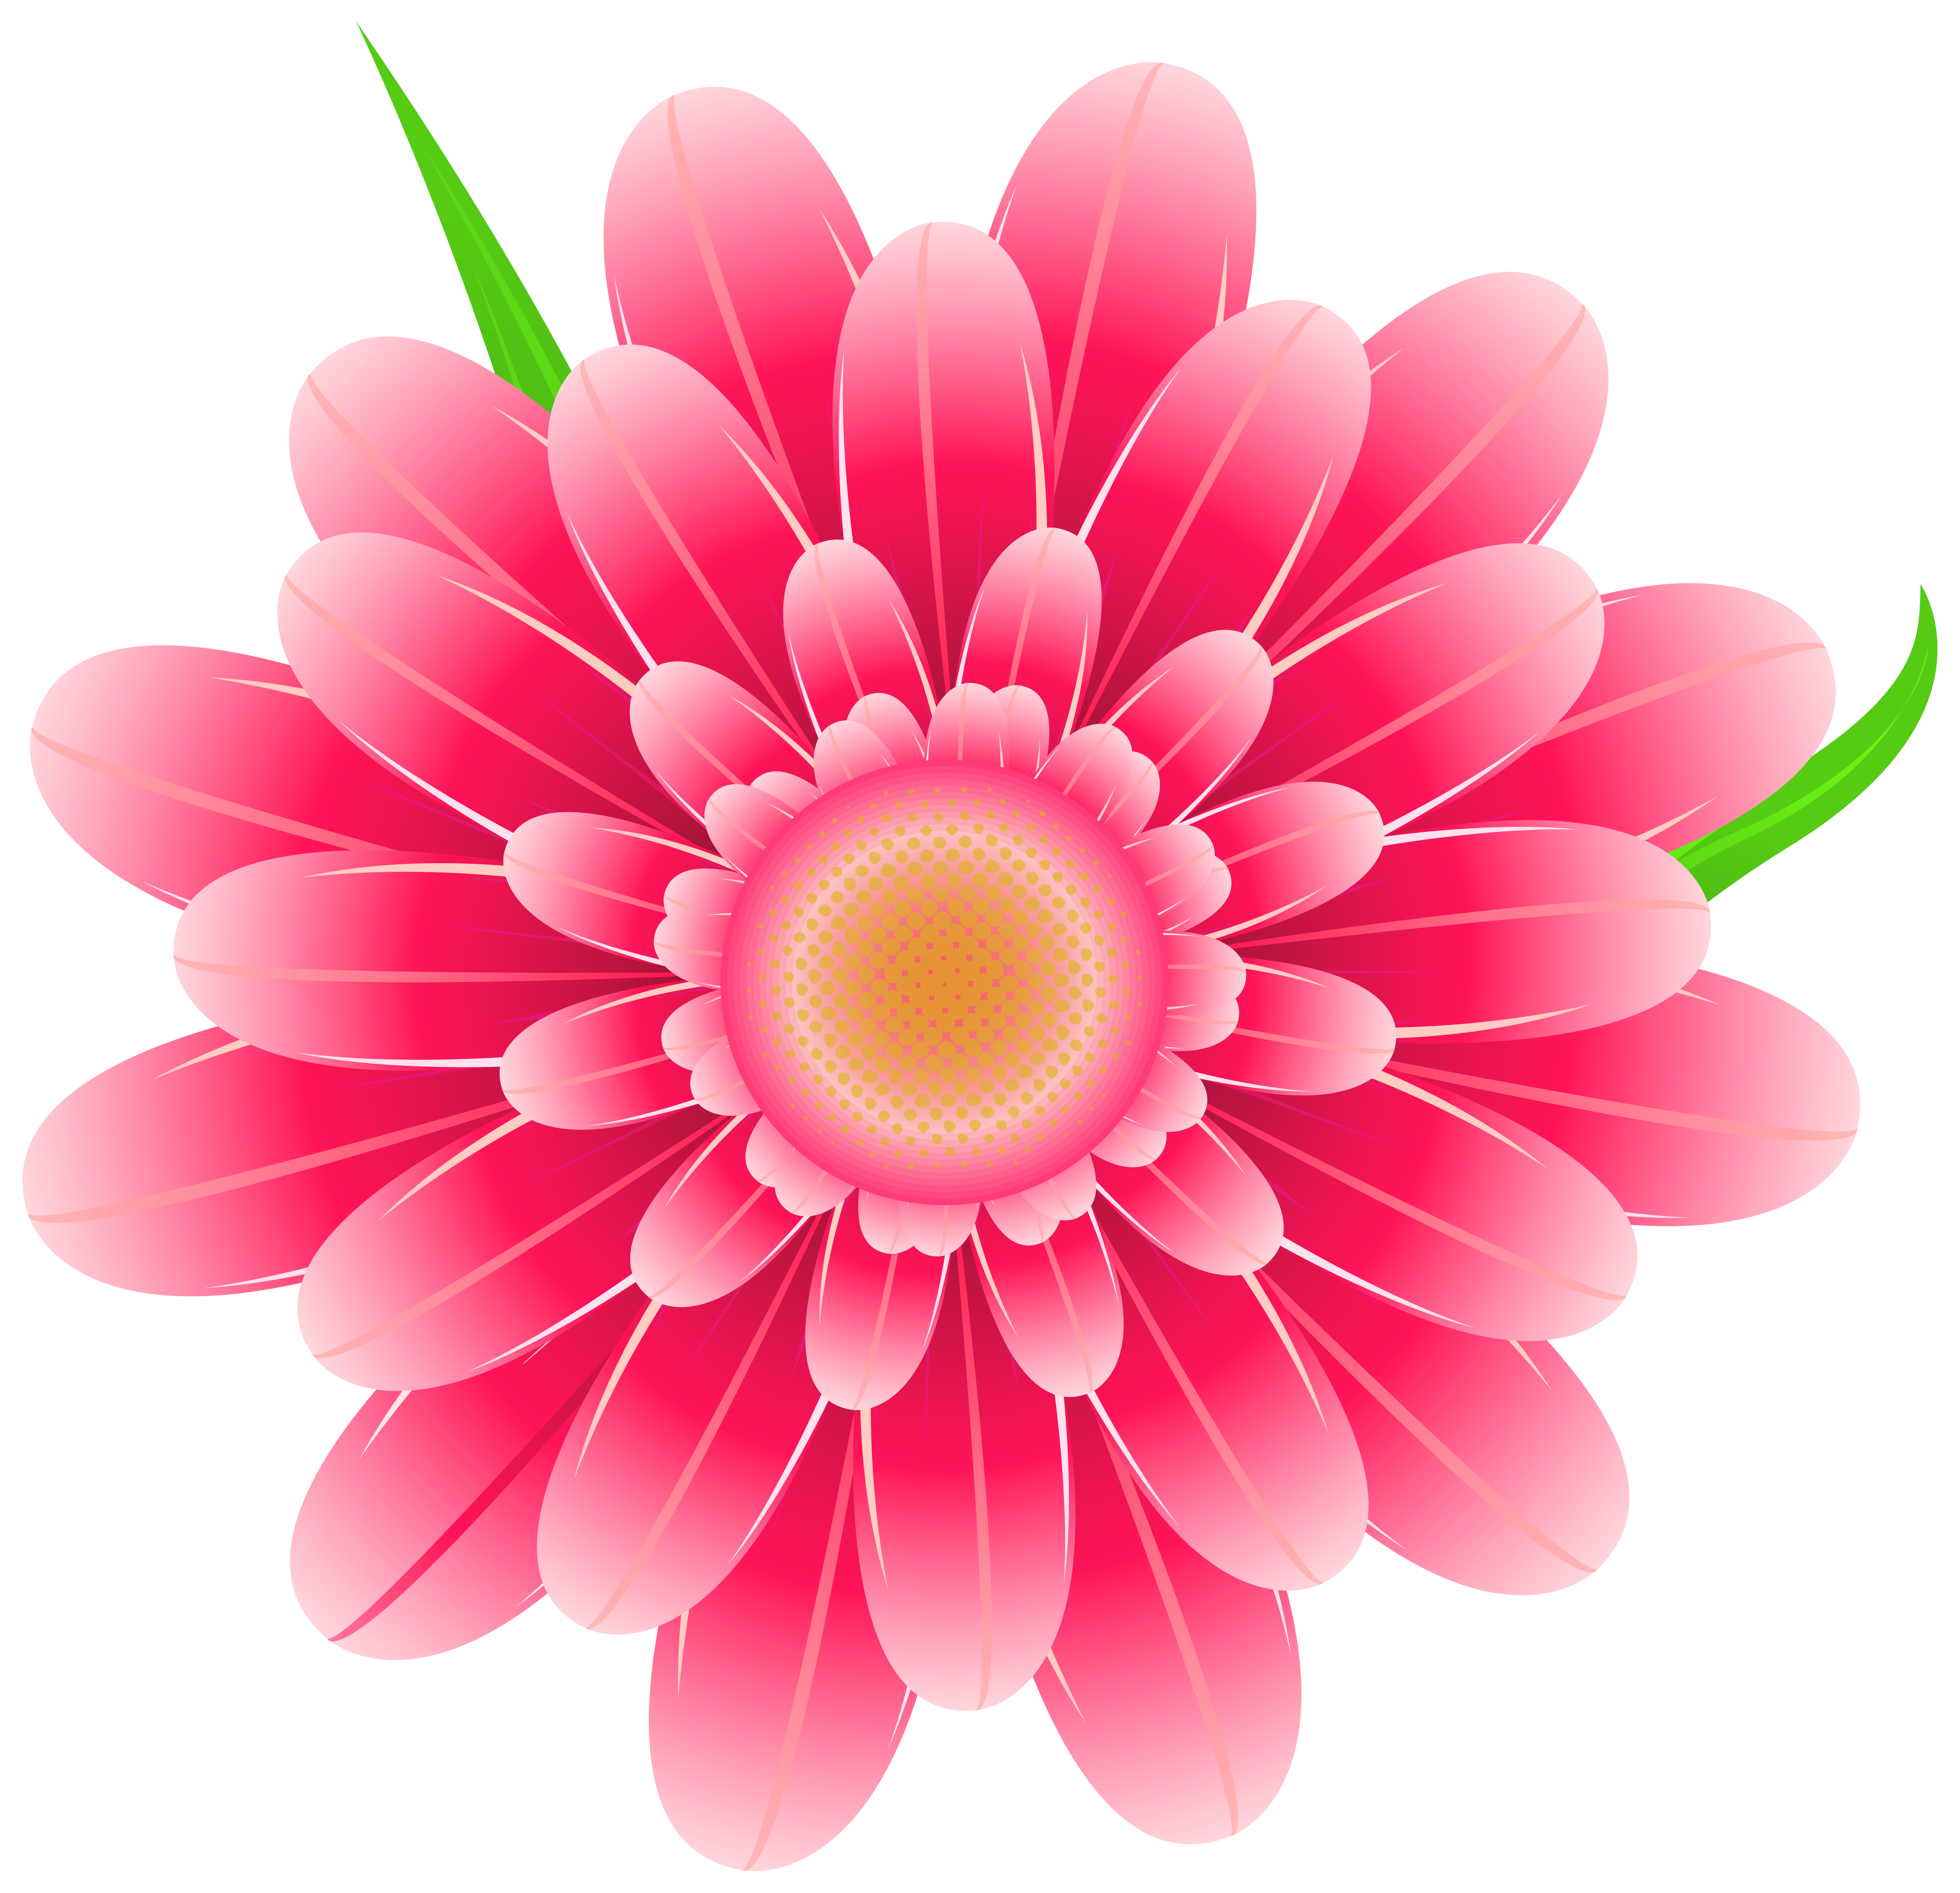 Pink flowers png. Transparent flower clipart image